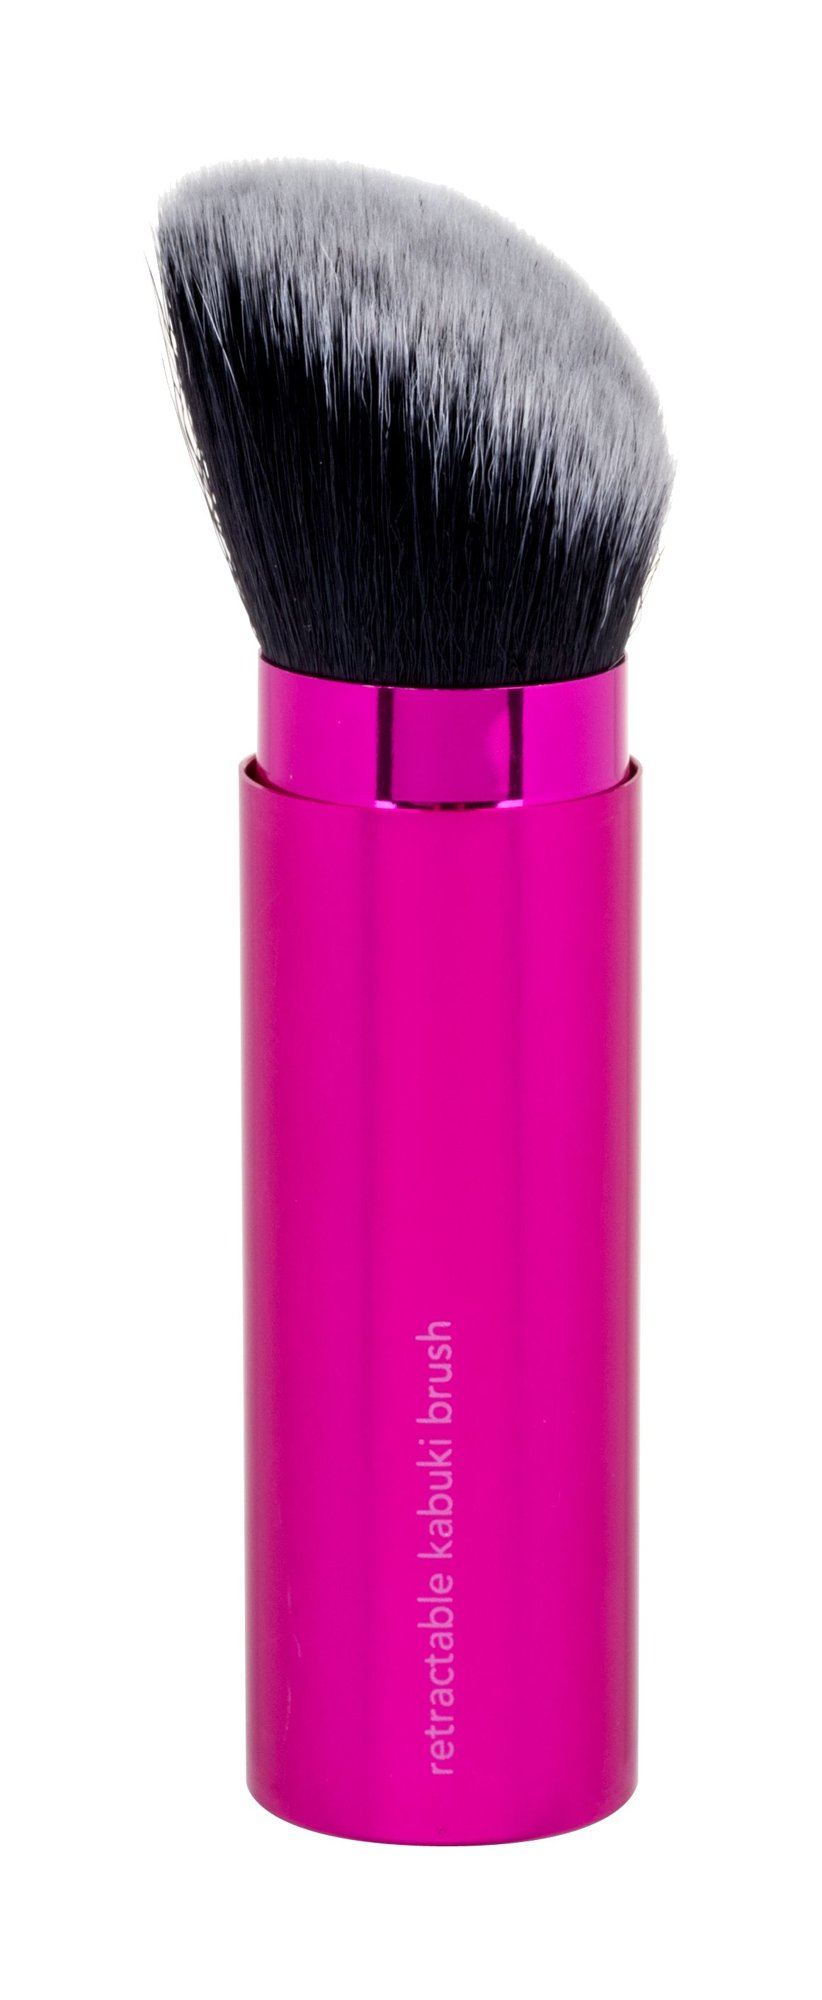 Real Techniques Finish Retractable Kabuki Brush Cosmetic 1ks